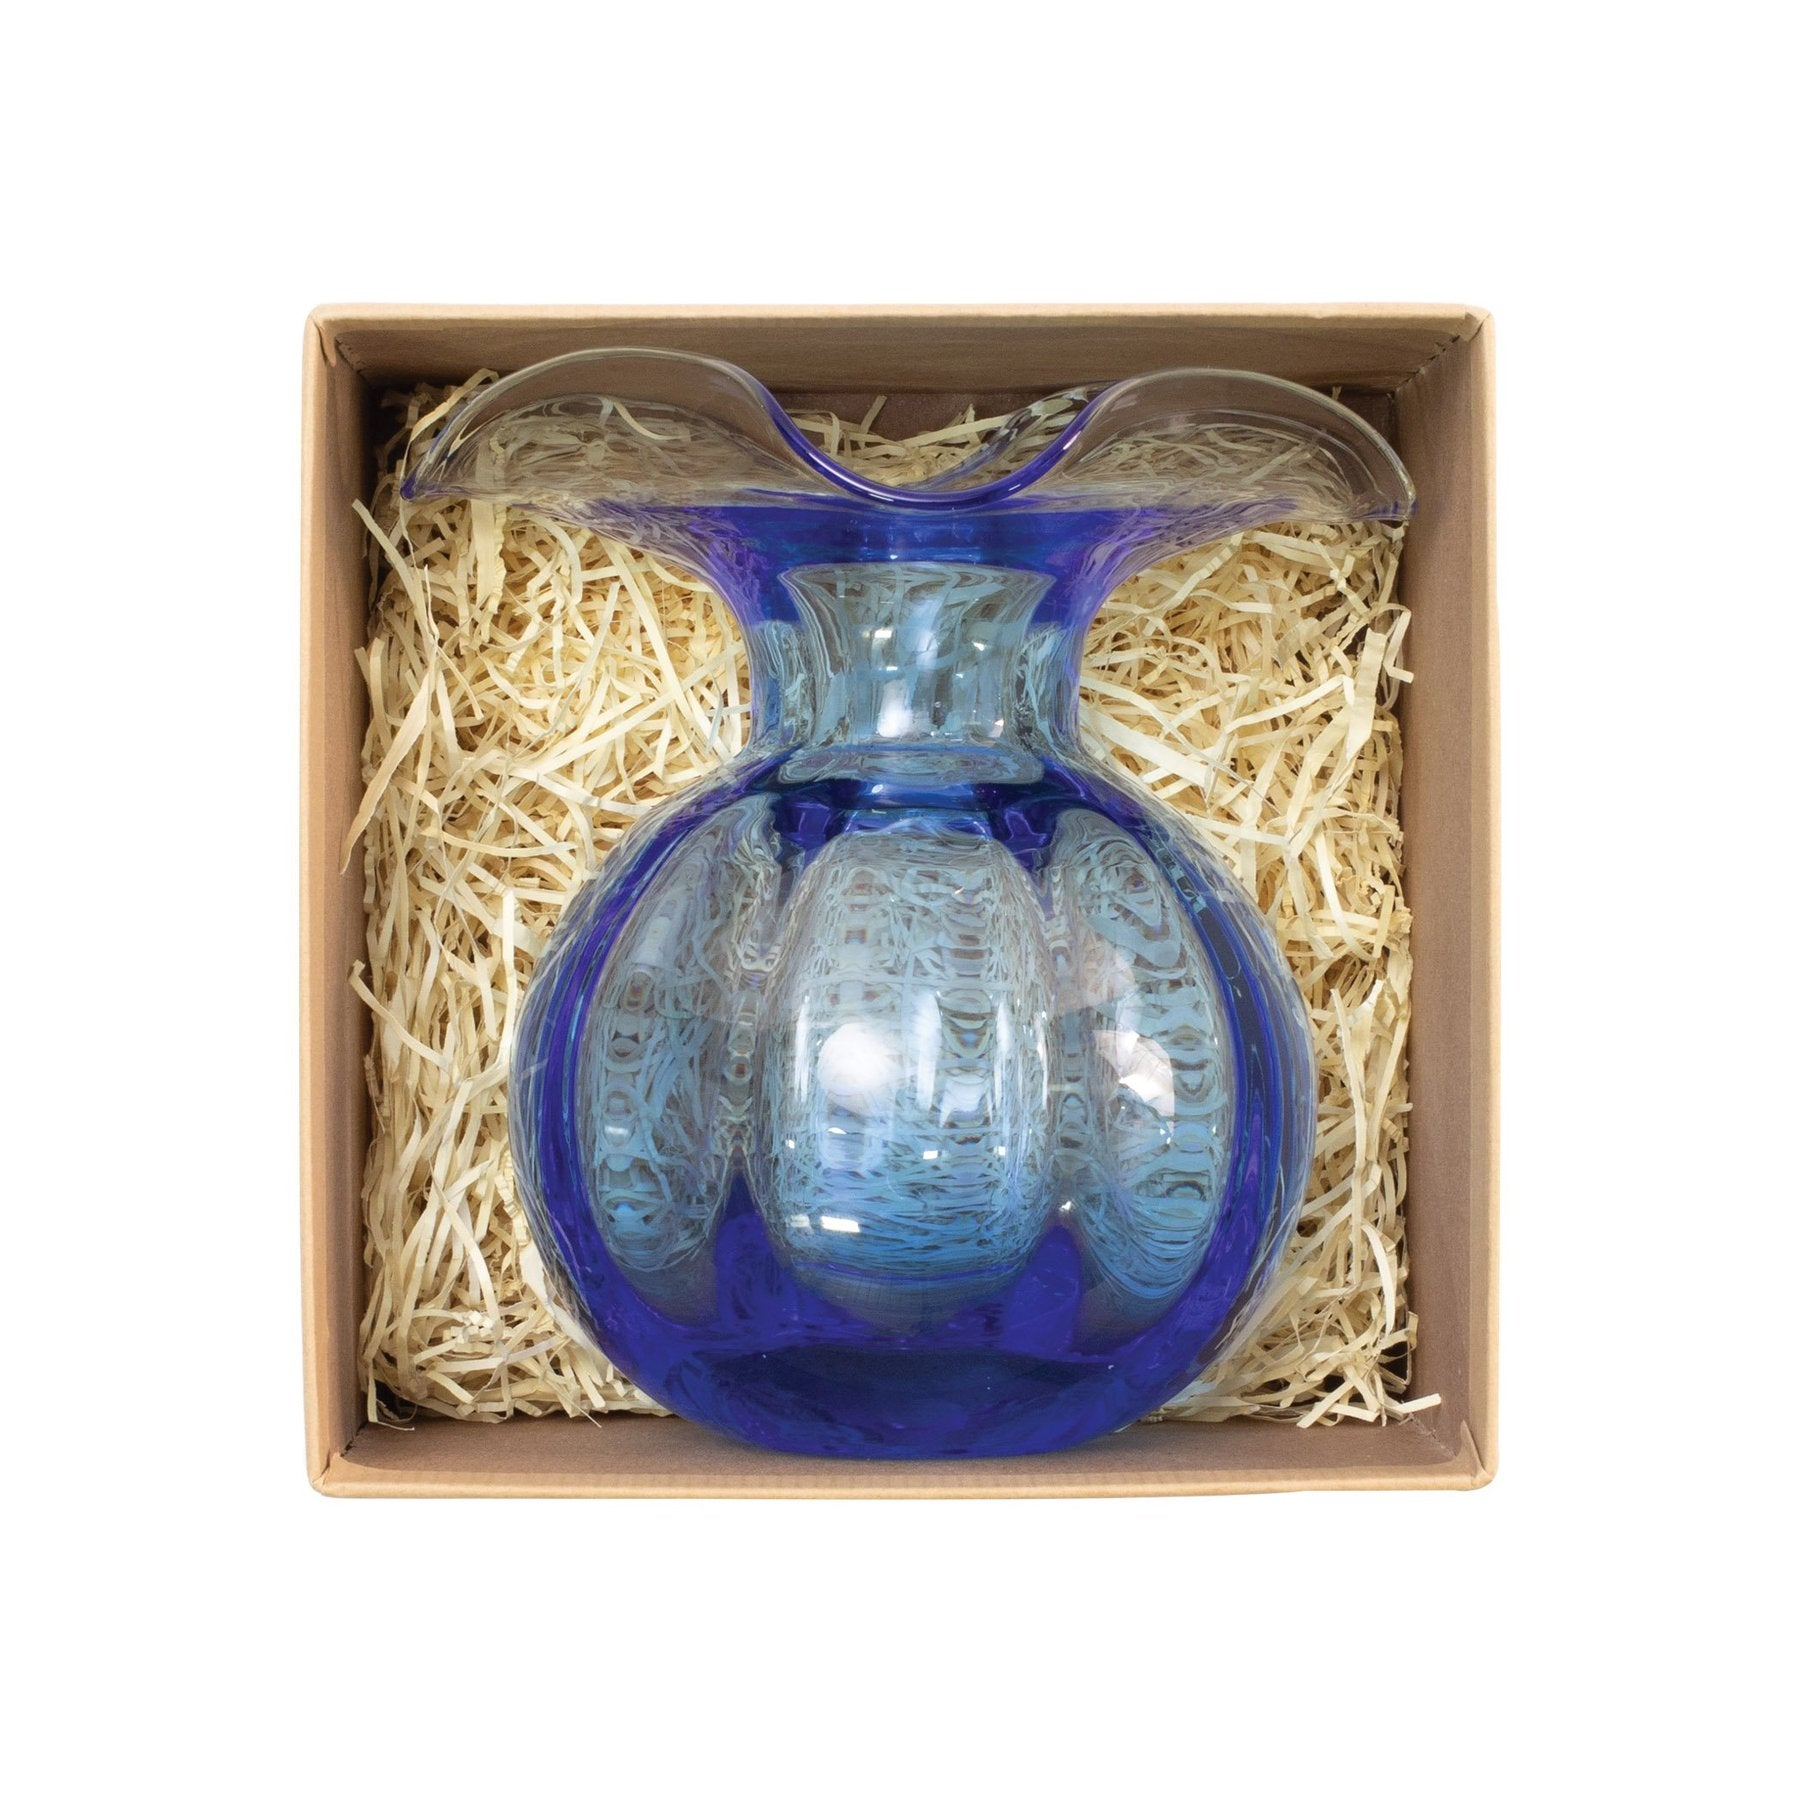 Vietri - HIBISCUS GLASS BUD VASE in box